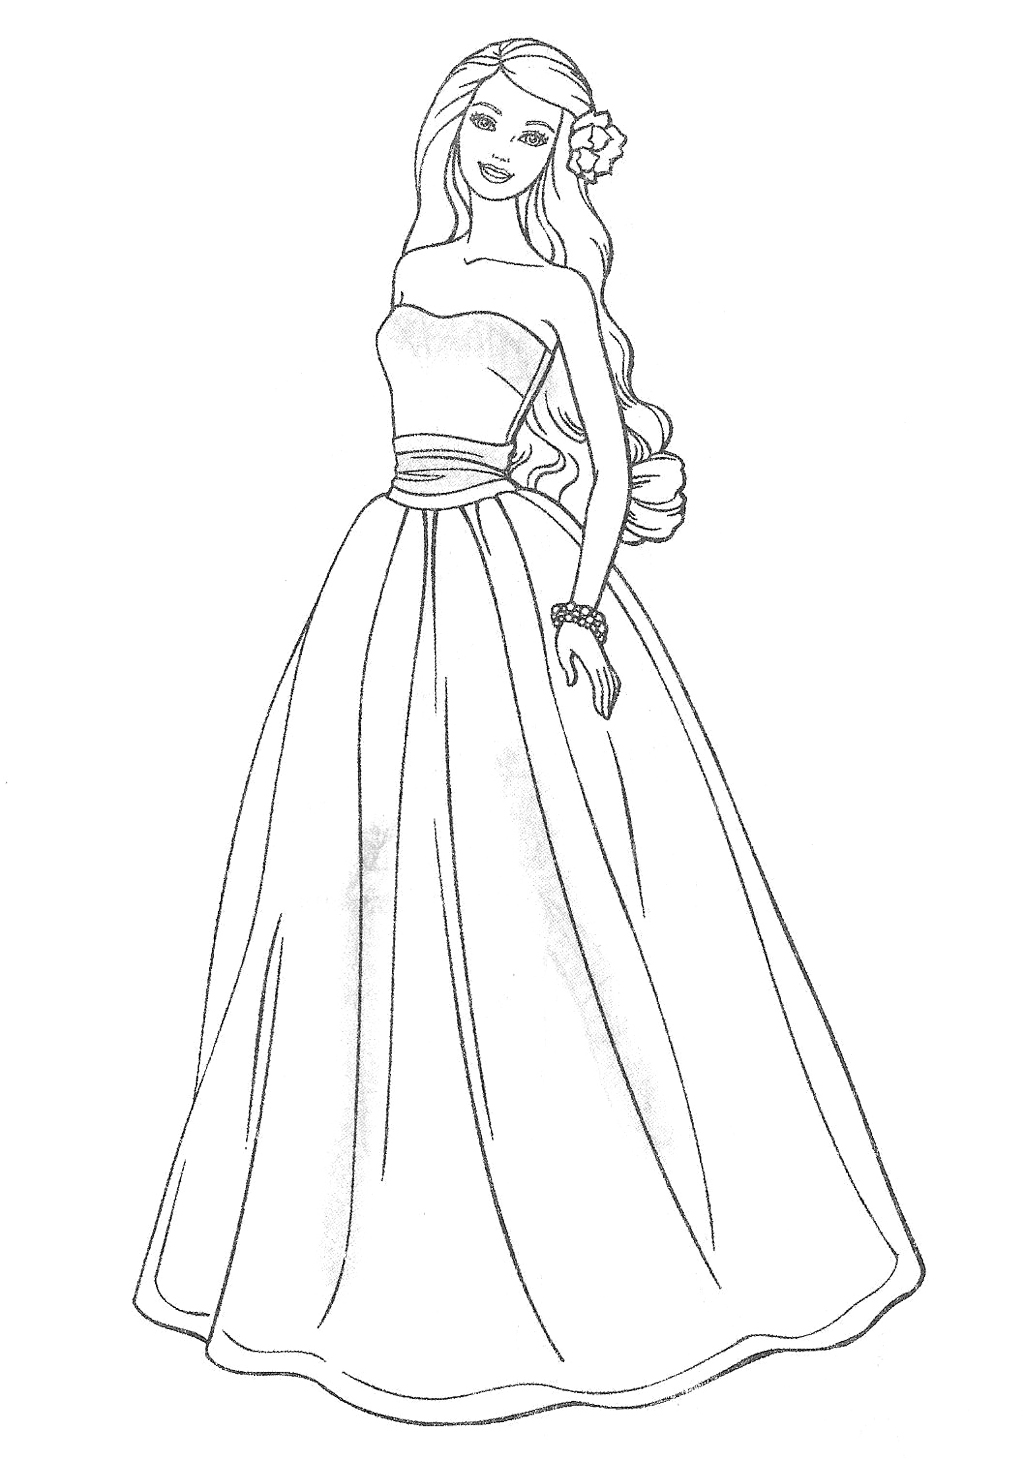 coloring pages of dresses dress coloring pages to download and print for free dresses of coloring pages